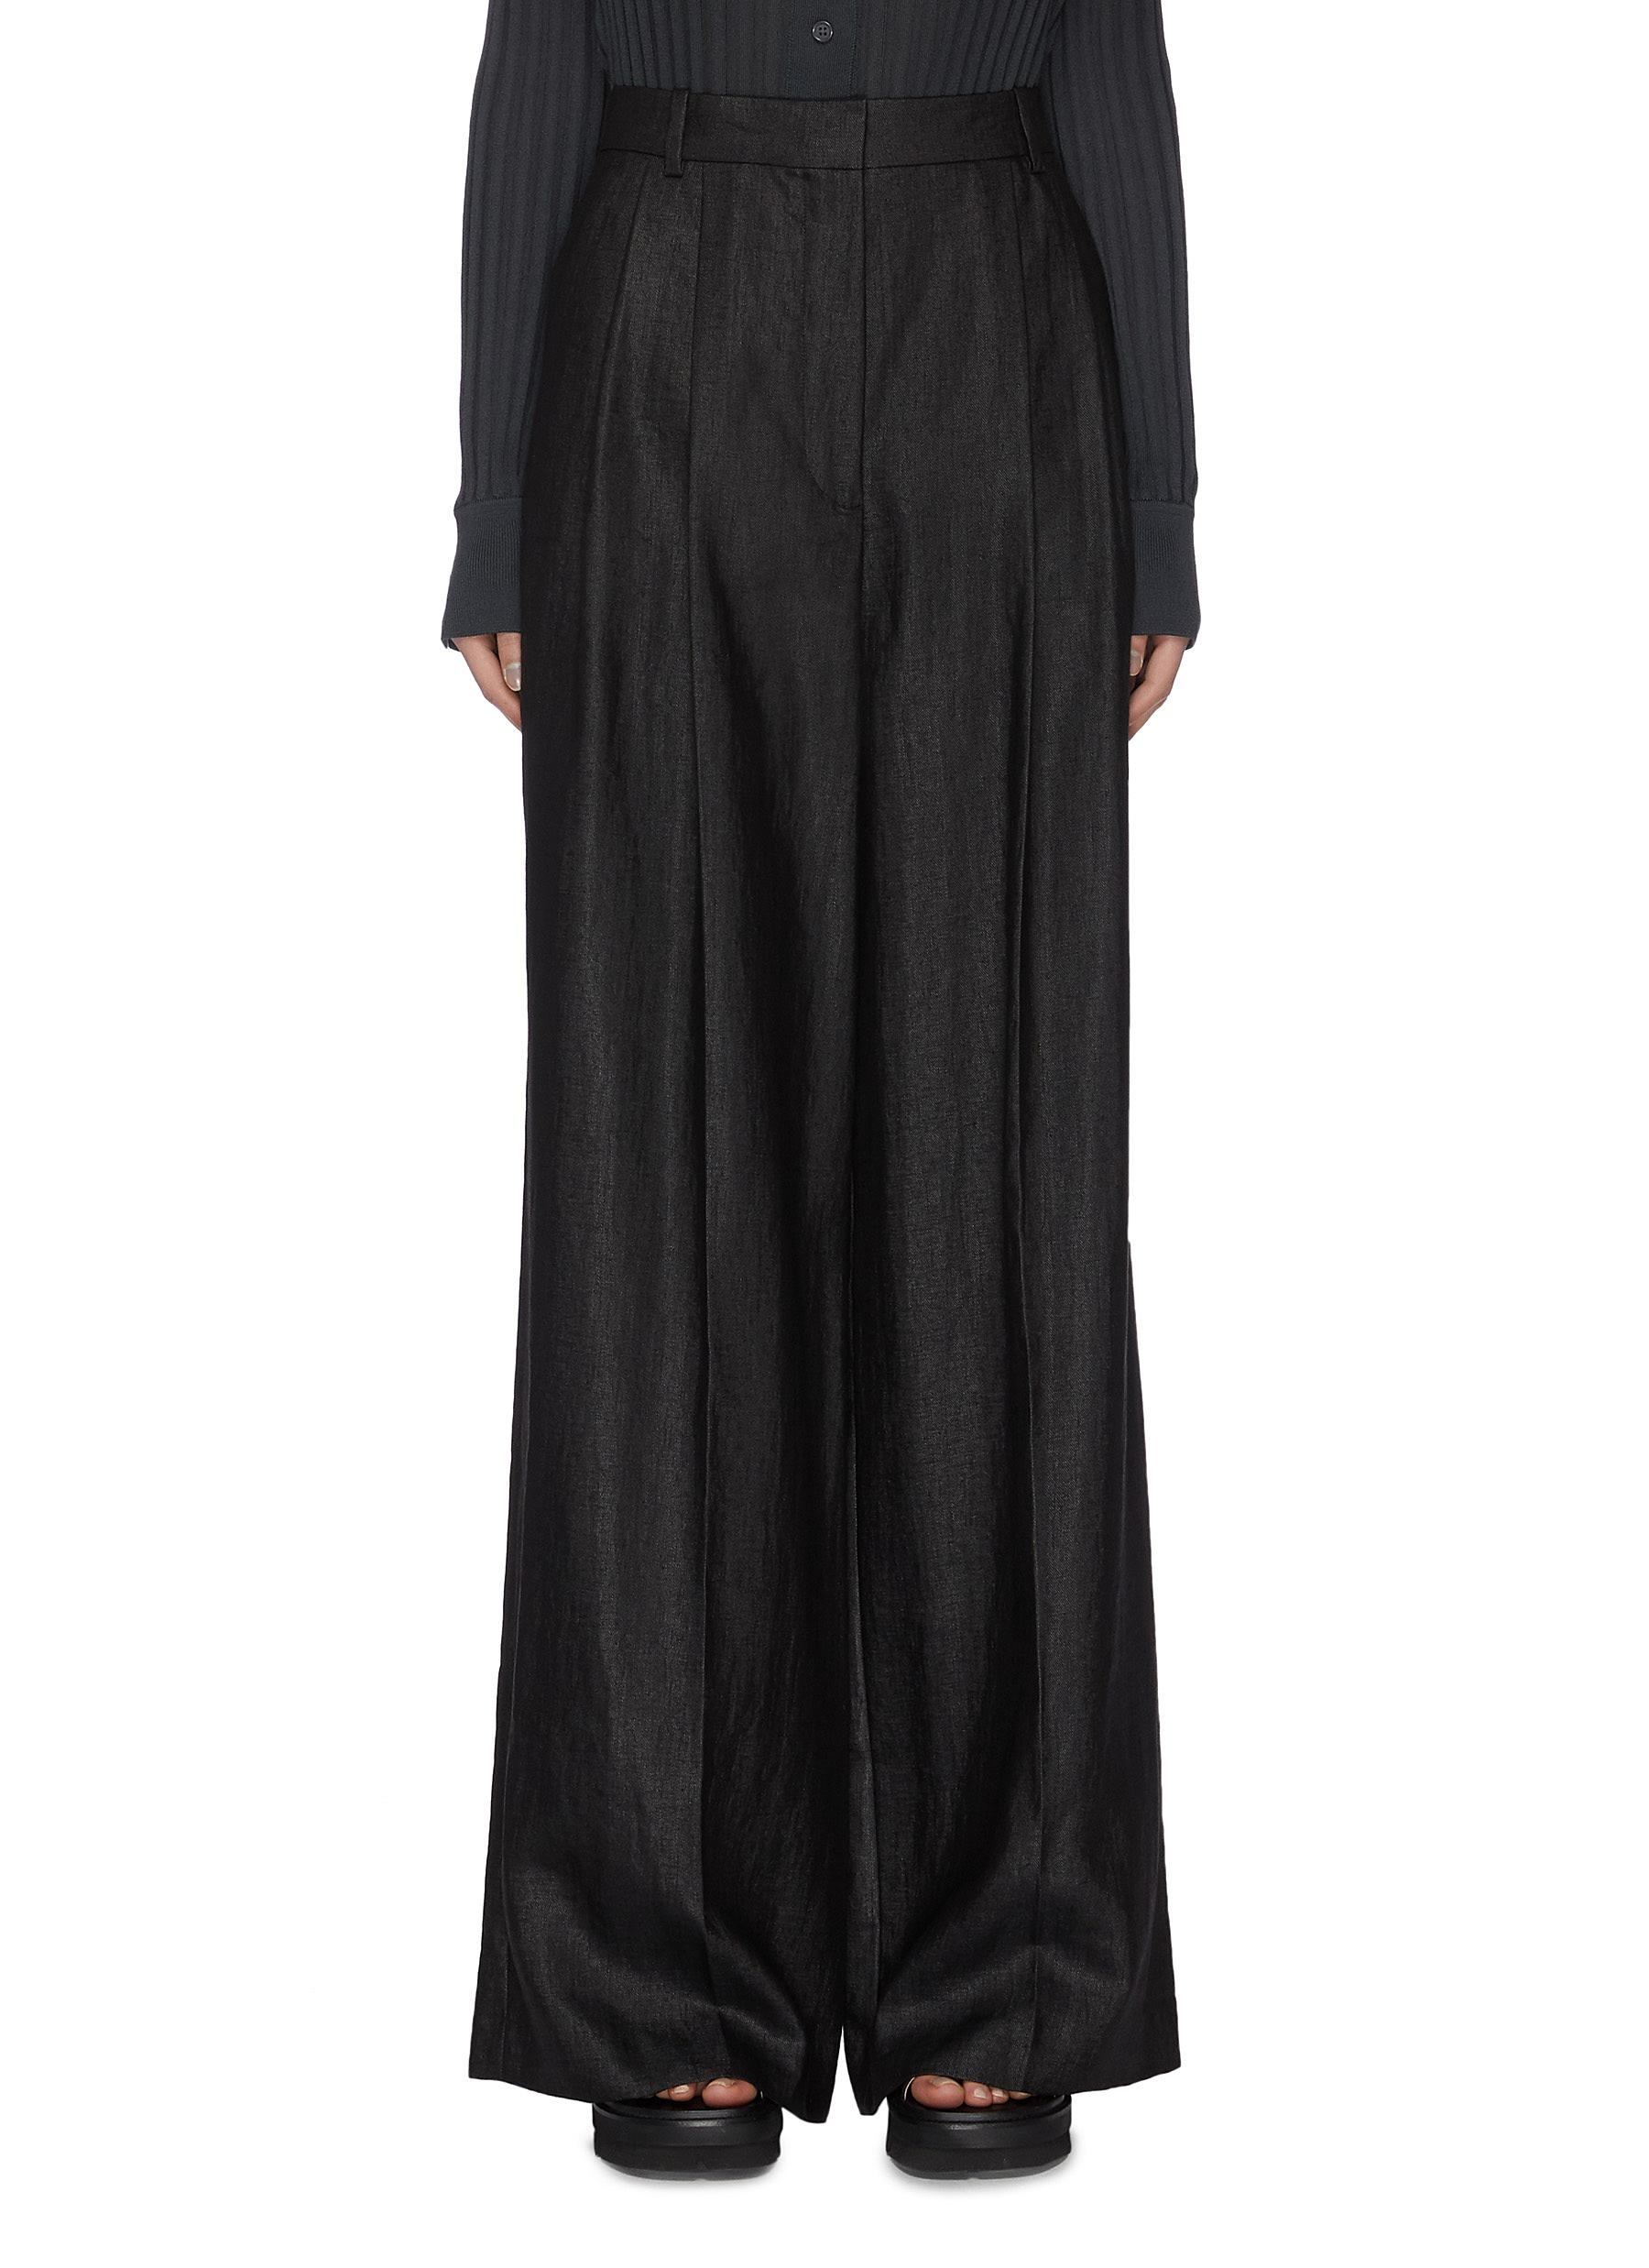 Buy Joseph Pants & Shorts Wide leg linen pants